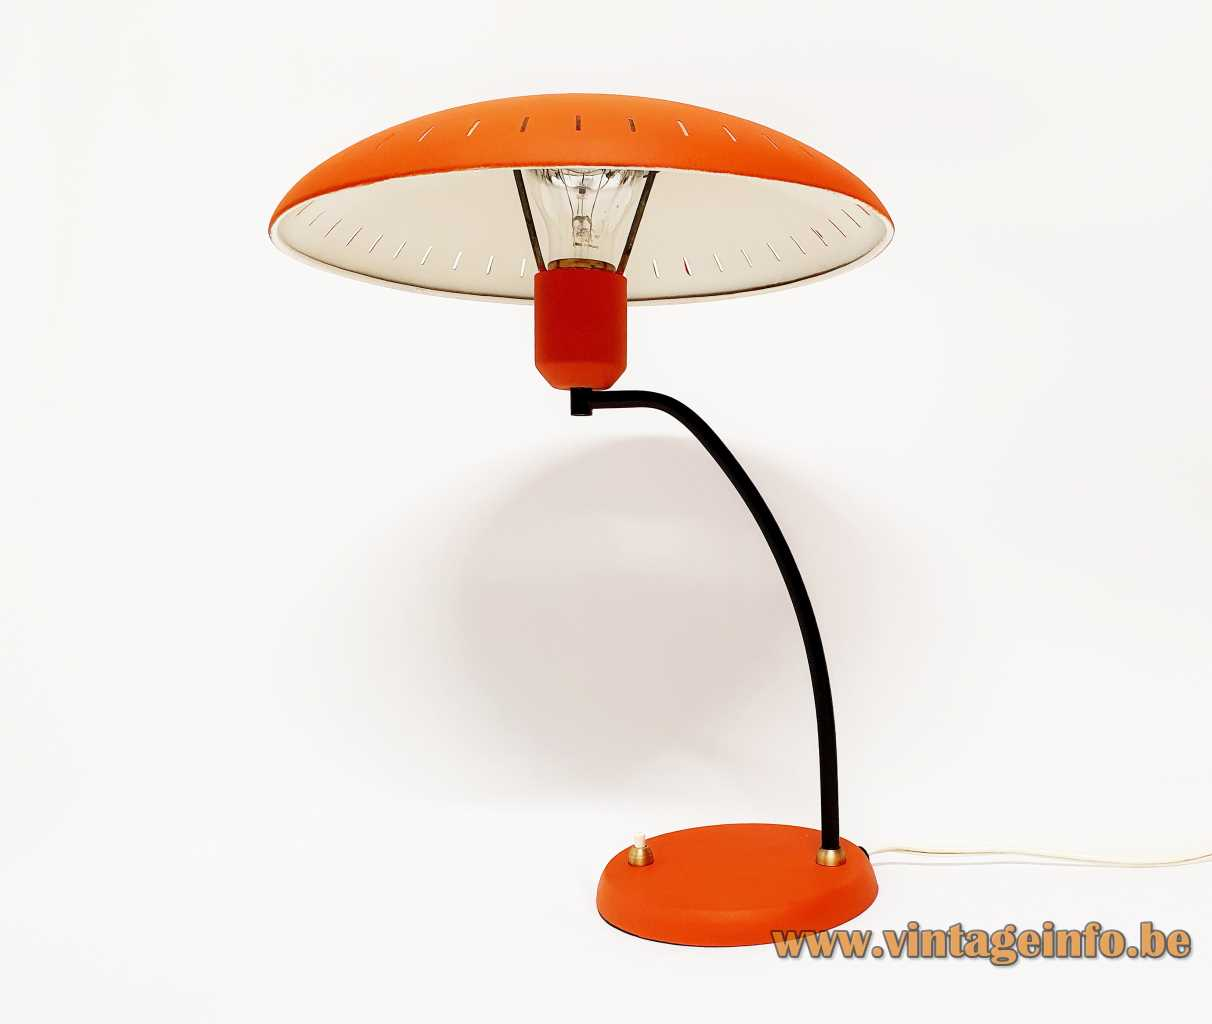 Philips Junior desk lamp 1955 design: Louis Kalff orange mushroom lampshade brass curved rod 1950s 1960s